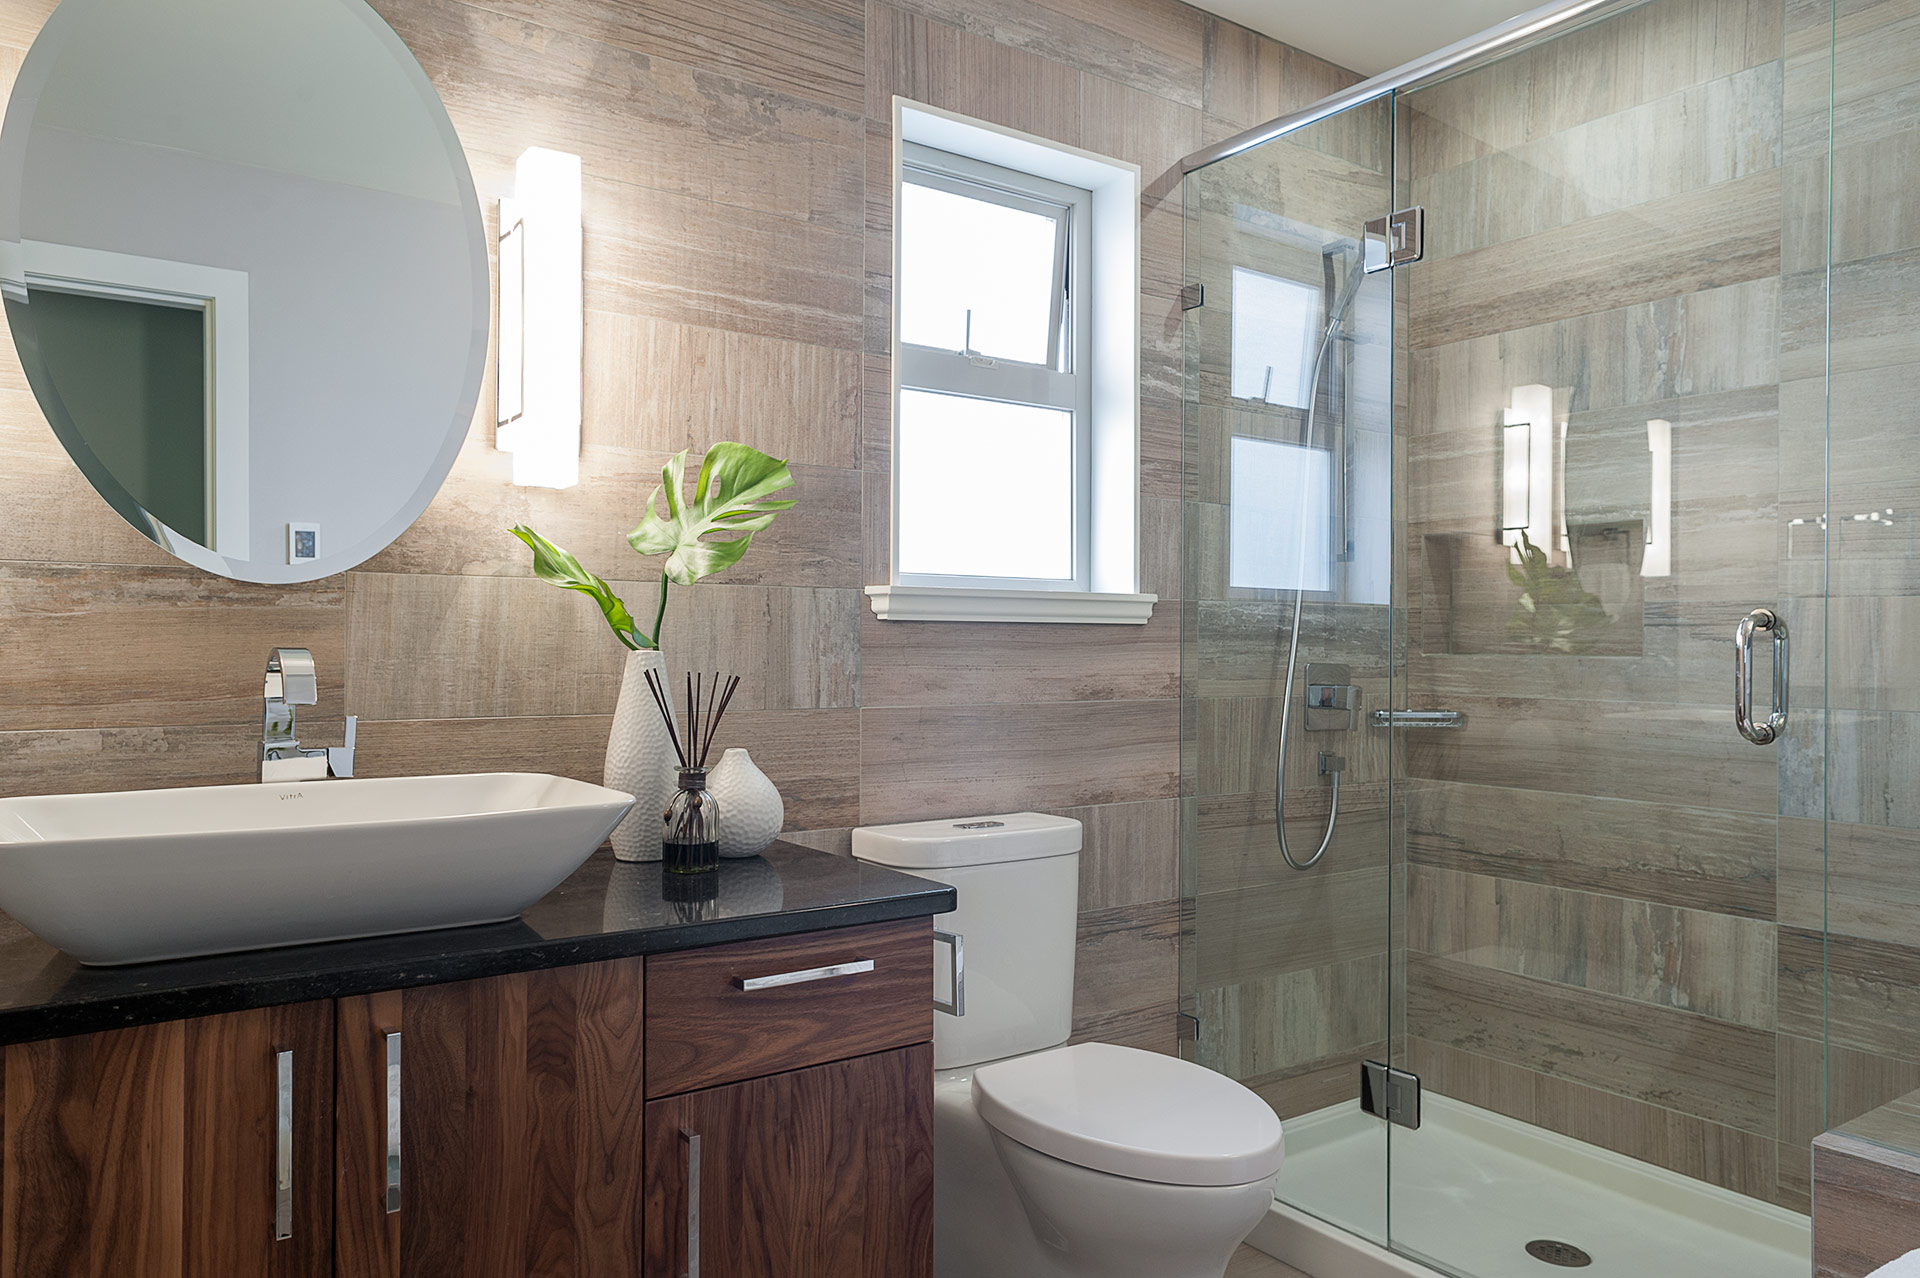 Small bathroom renovation loaded with style modern home victoria magazine - Bathroom photo desin ...